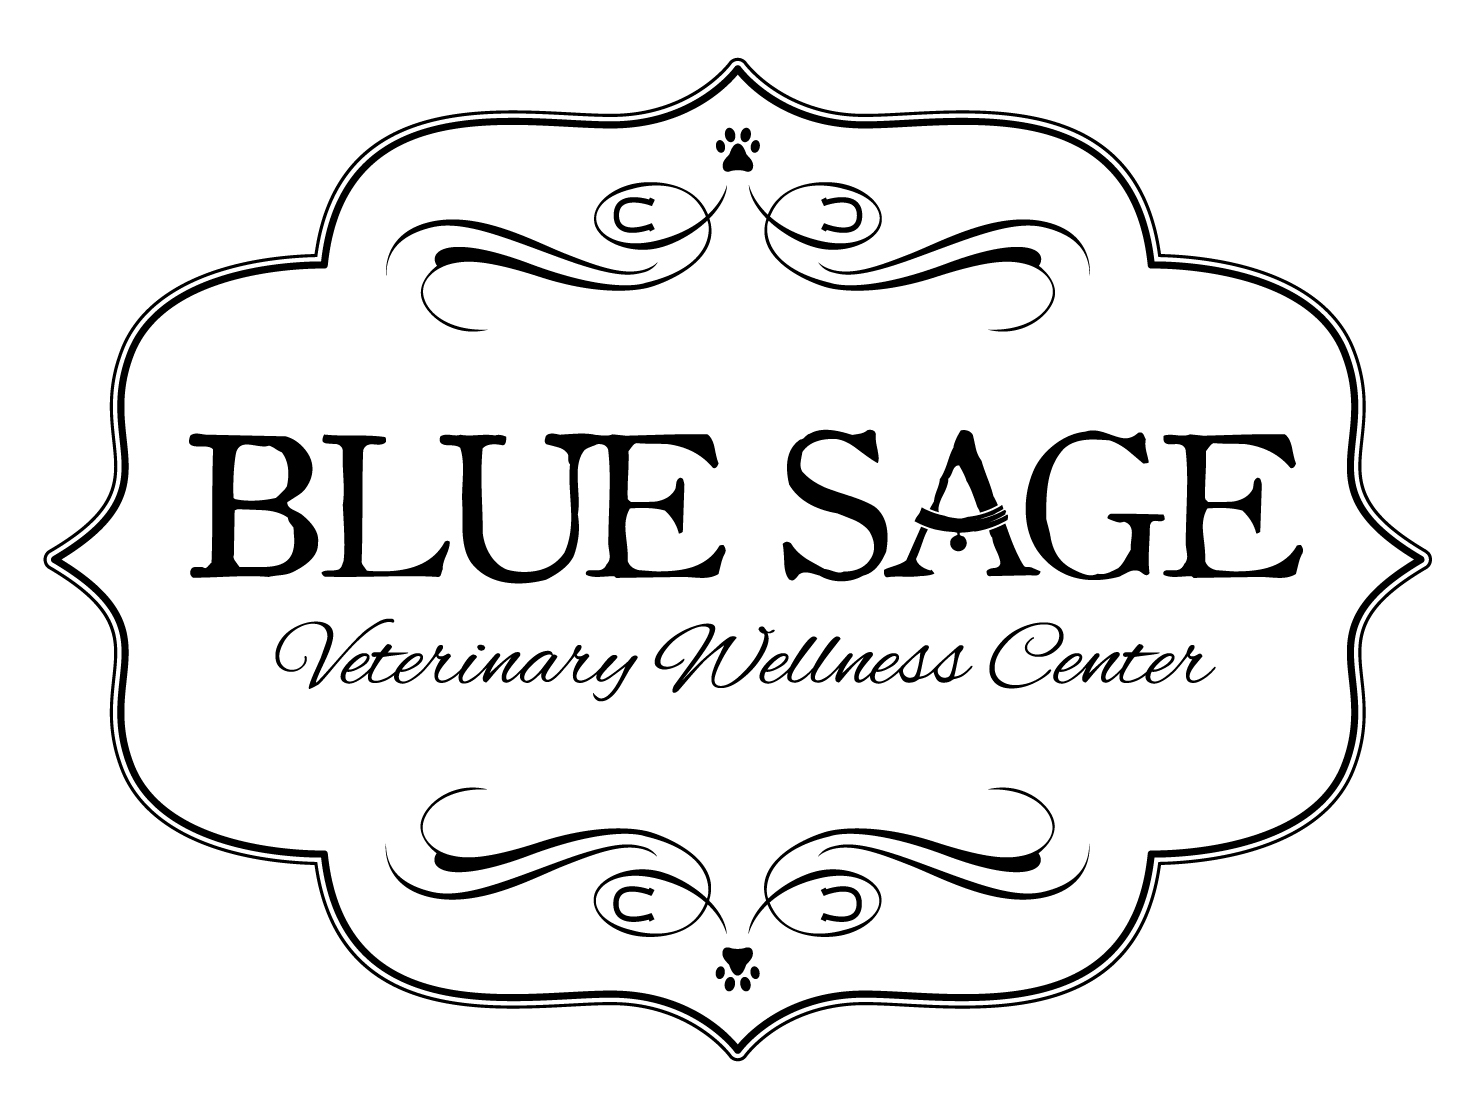 BLUE SAGE Veterinary Wellness Center